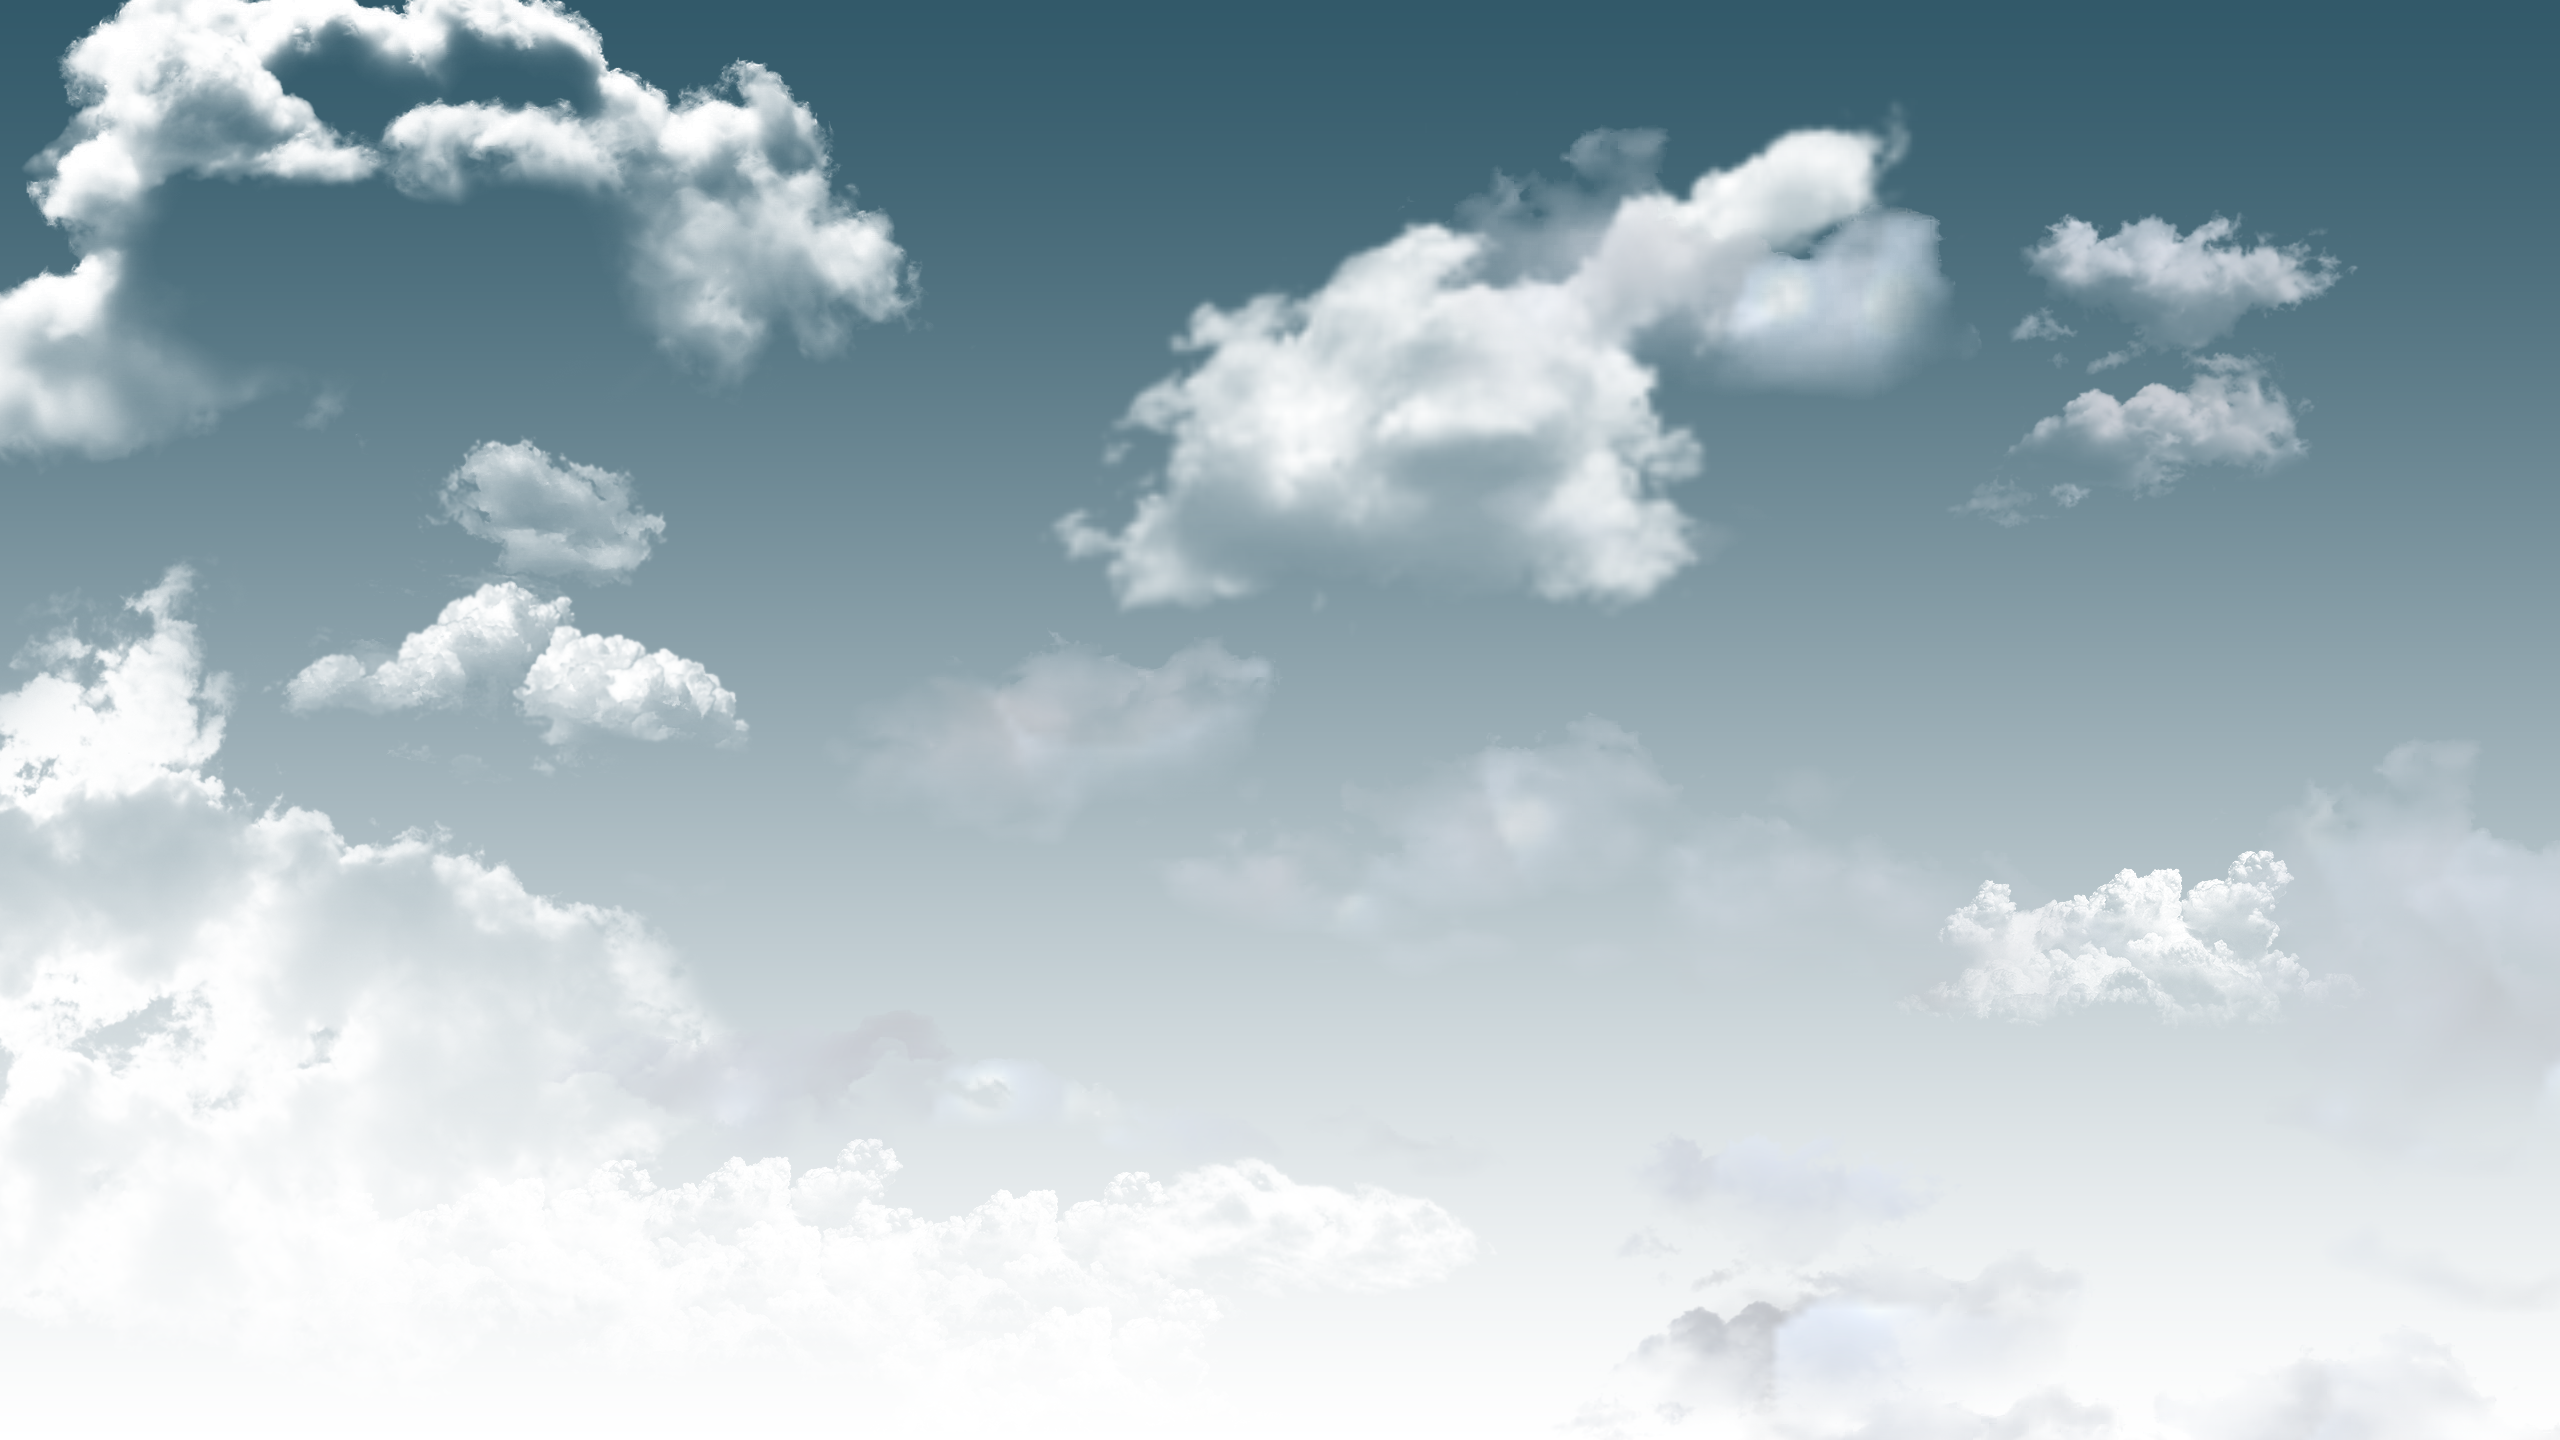 Cloudy Sky Background PNG - 159264